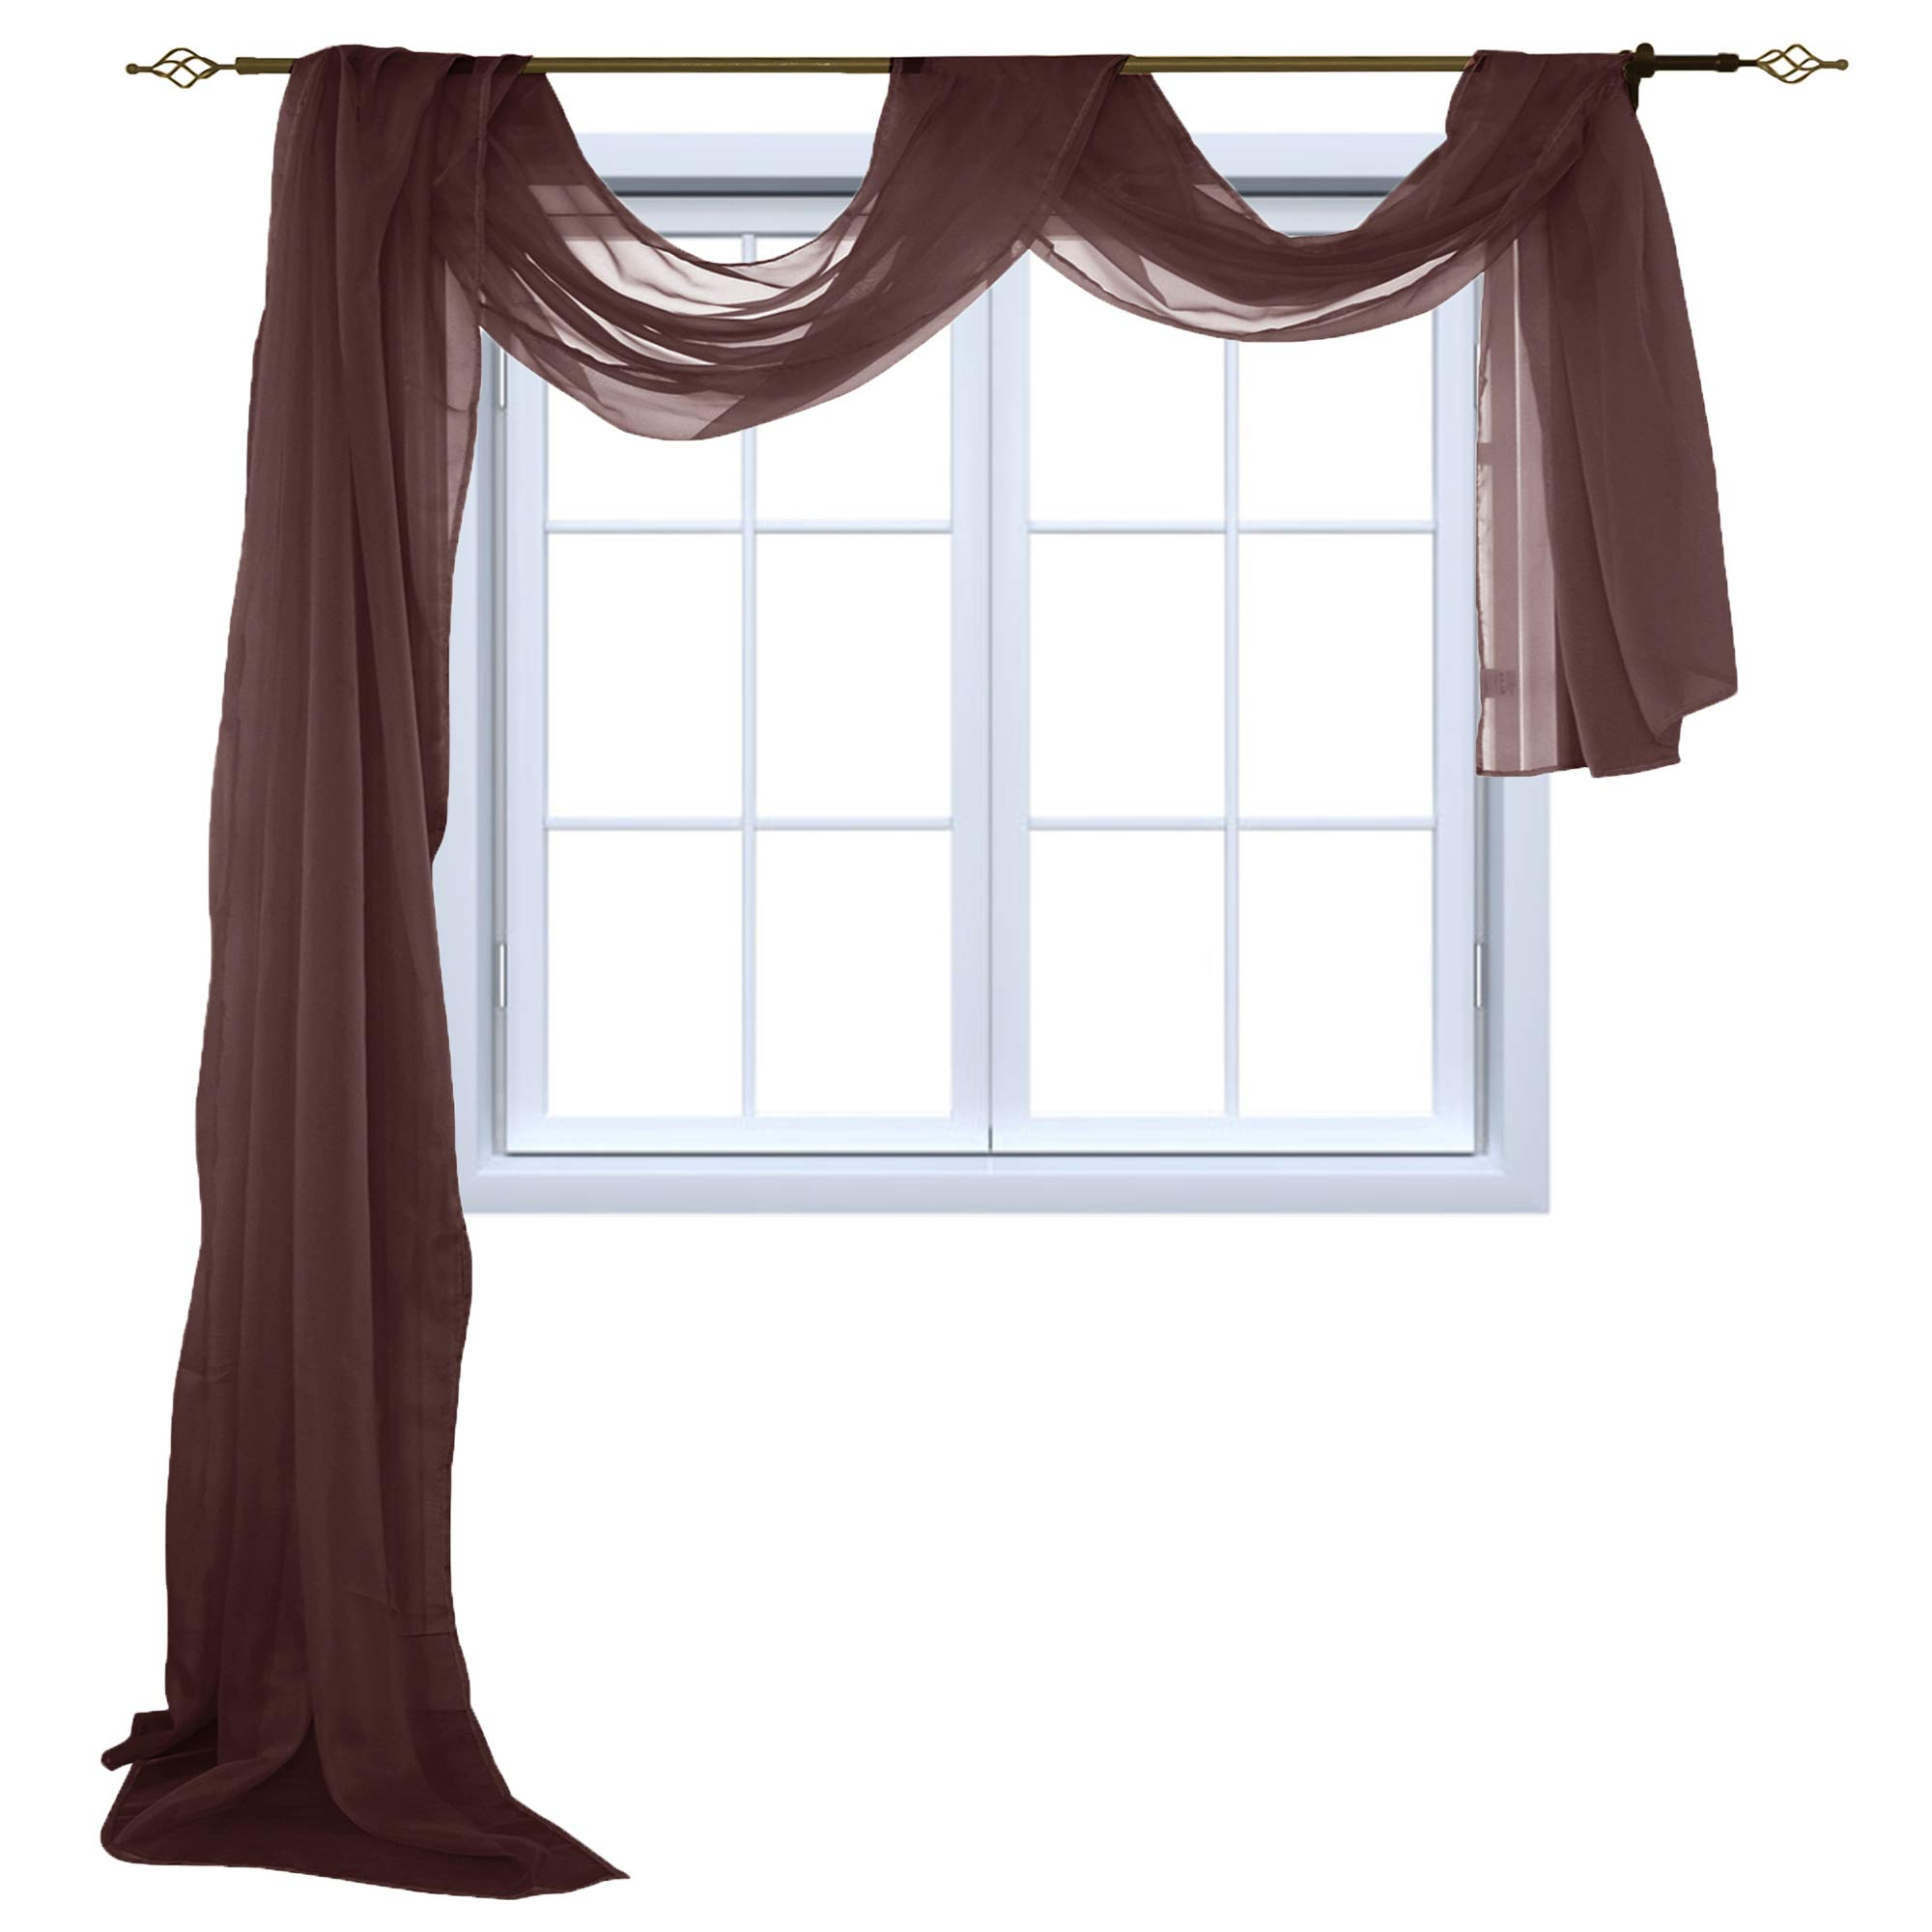 HOLKING Sheer Window Scarf Sheer Voile Curtain for Window Treatment-Add to Window Curtains for Enhanced Effect by, Brown,52 inch Width by 216 inch Length